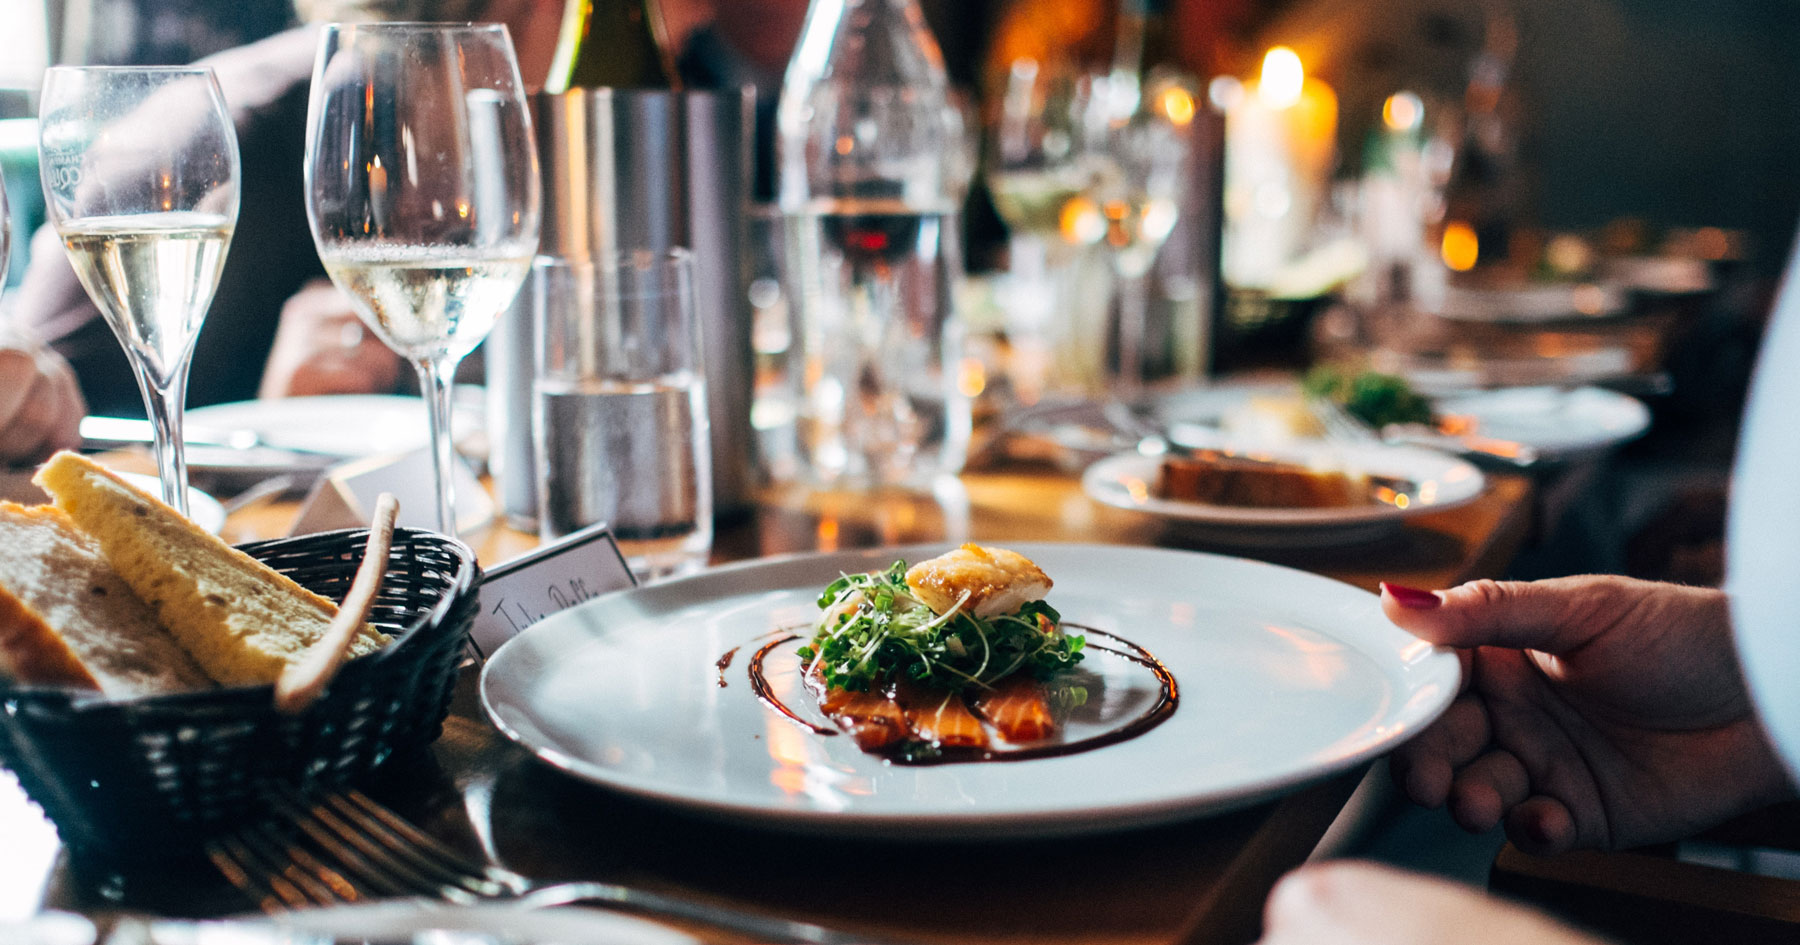 Sticking to your guns: how to survive client dinners and holiday parties